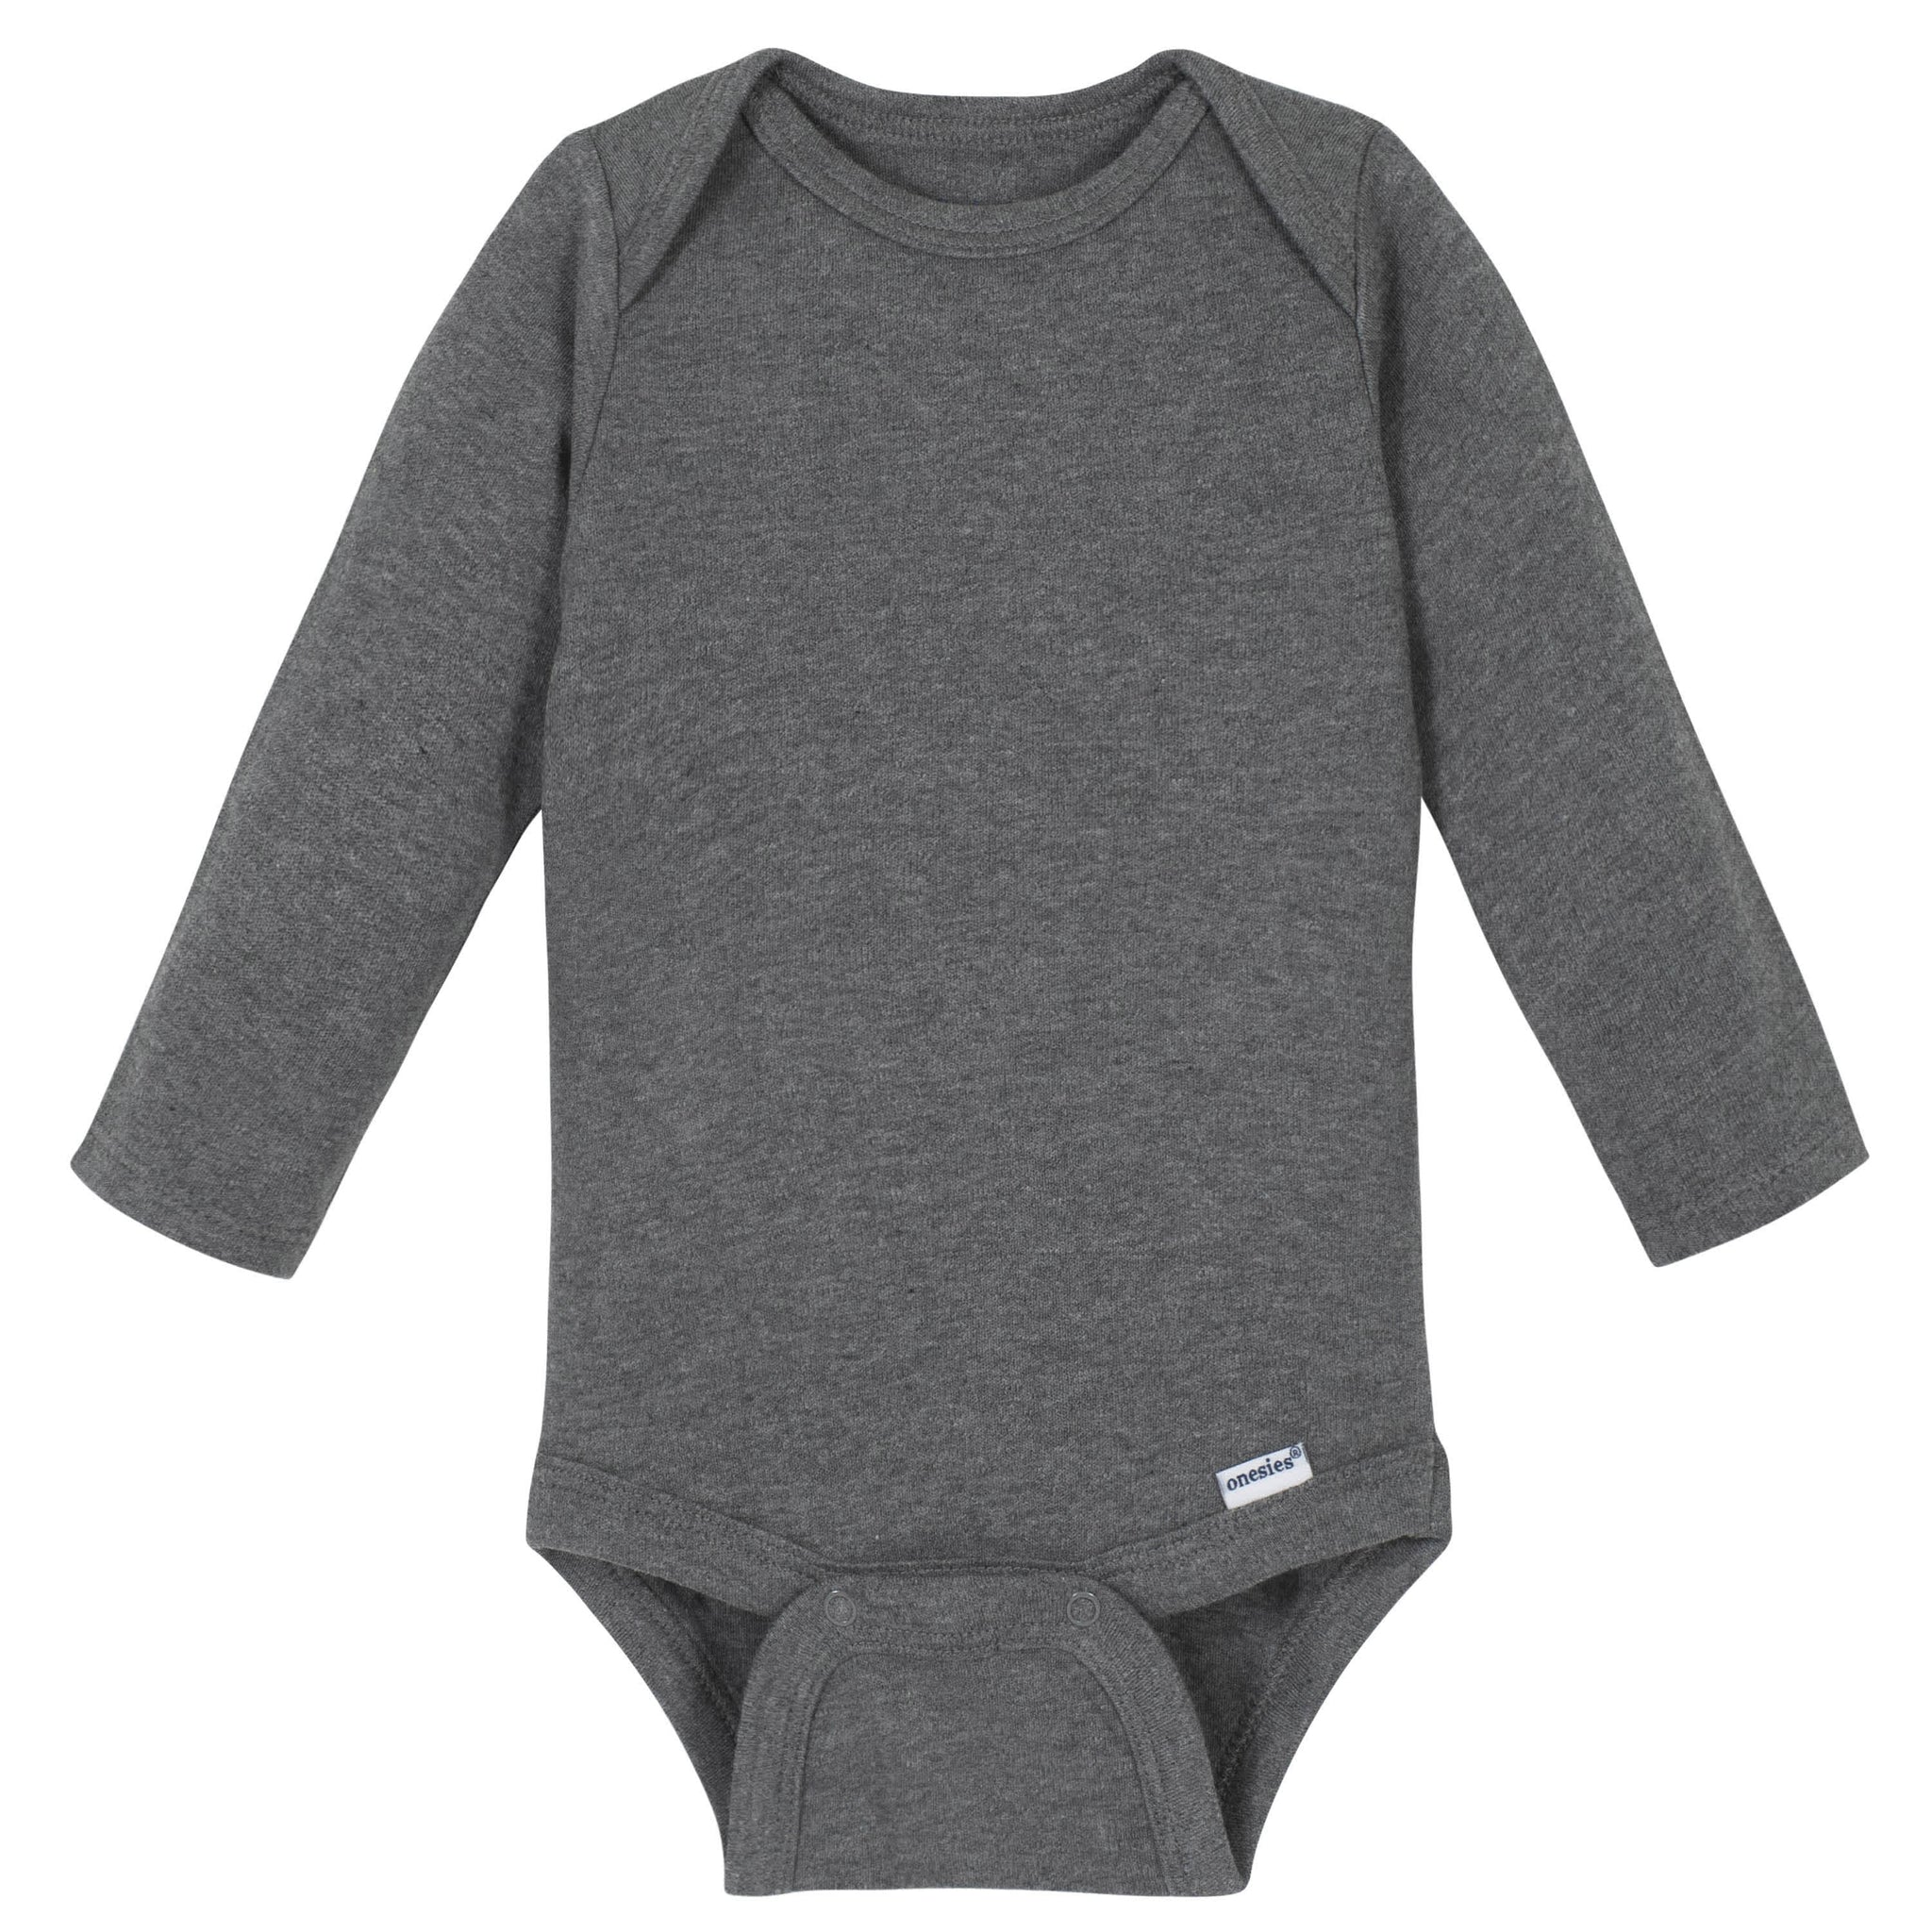 Gerber® Premium Gray Long Sleeve Onesies® Brand Bodysuit - 10 Colors Available